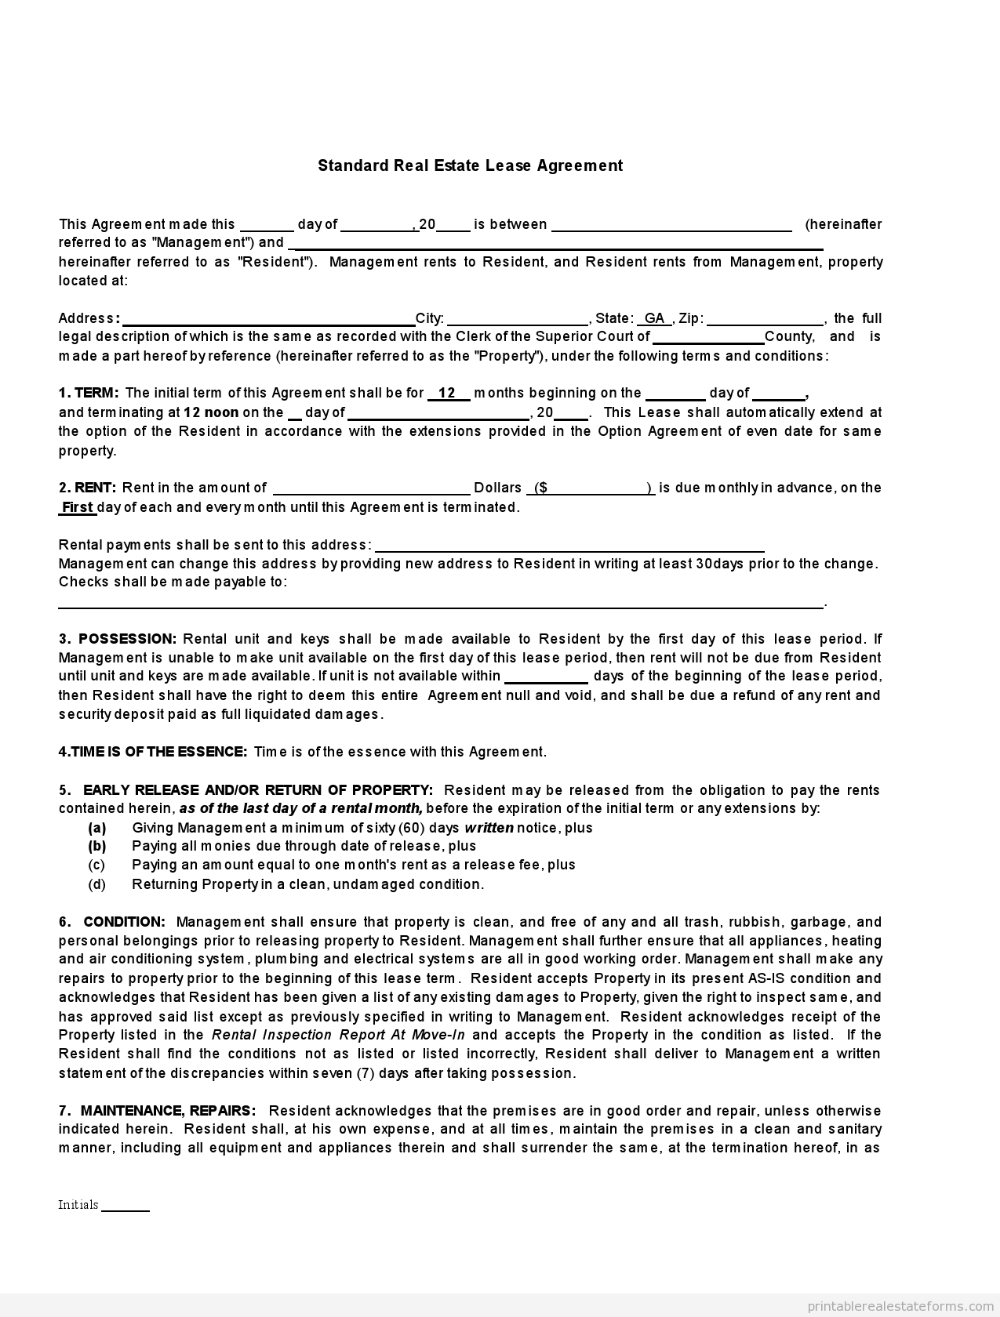 Free Printable Rental Lease Agreements Form Template In 2020 Lease Agreement Real Estate Lease Rental Agreement Templates